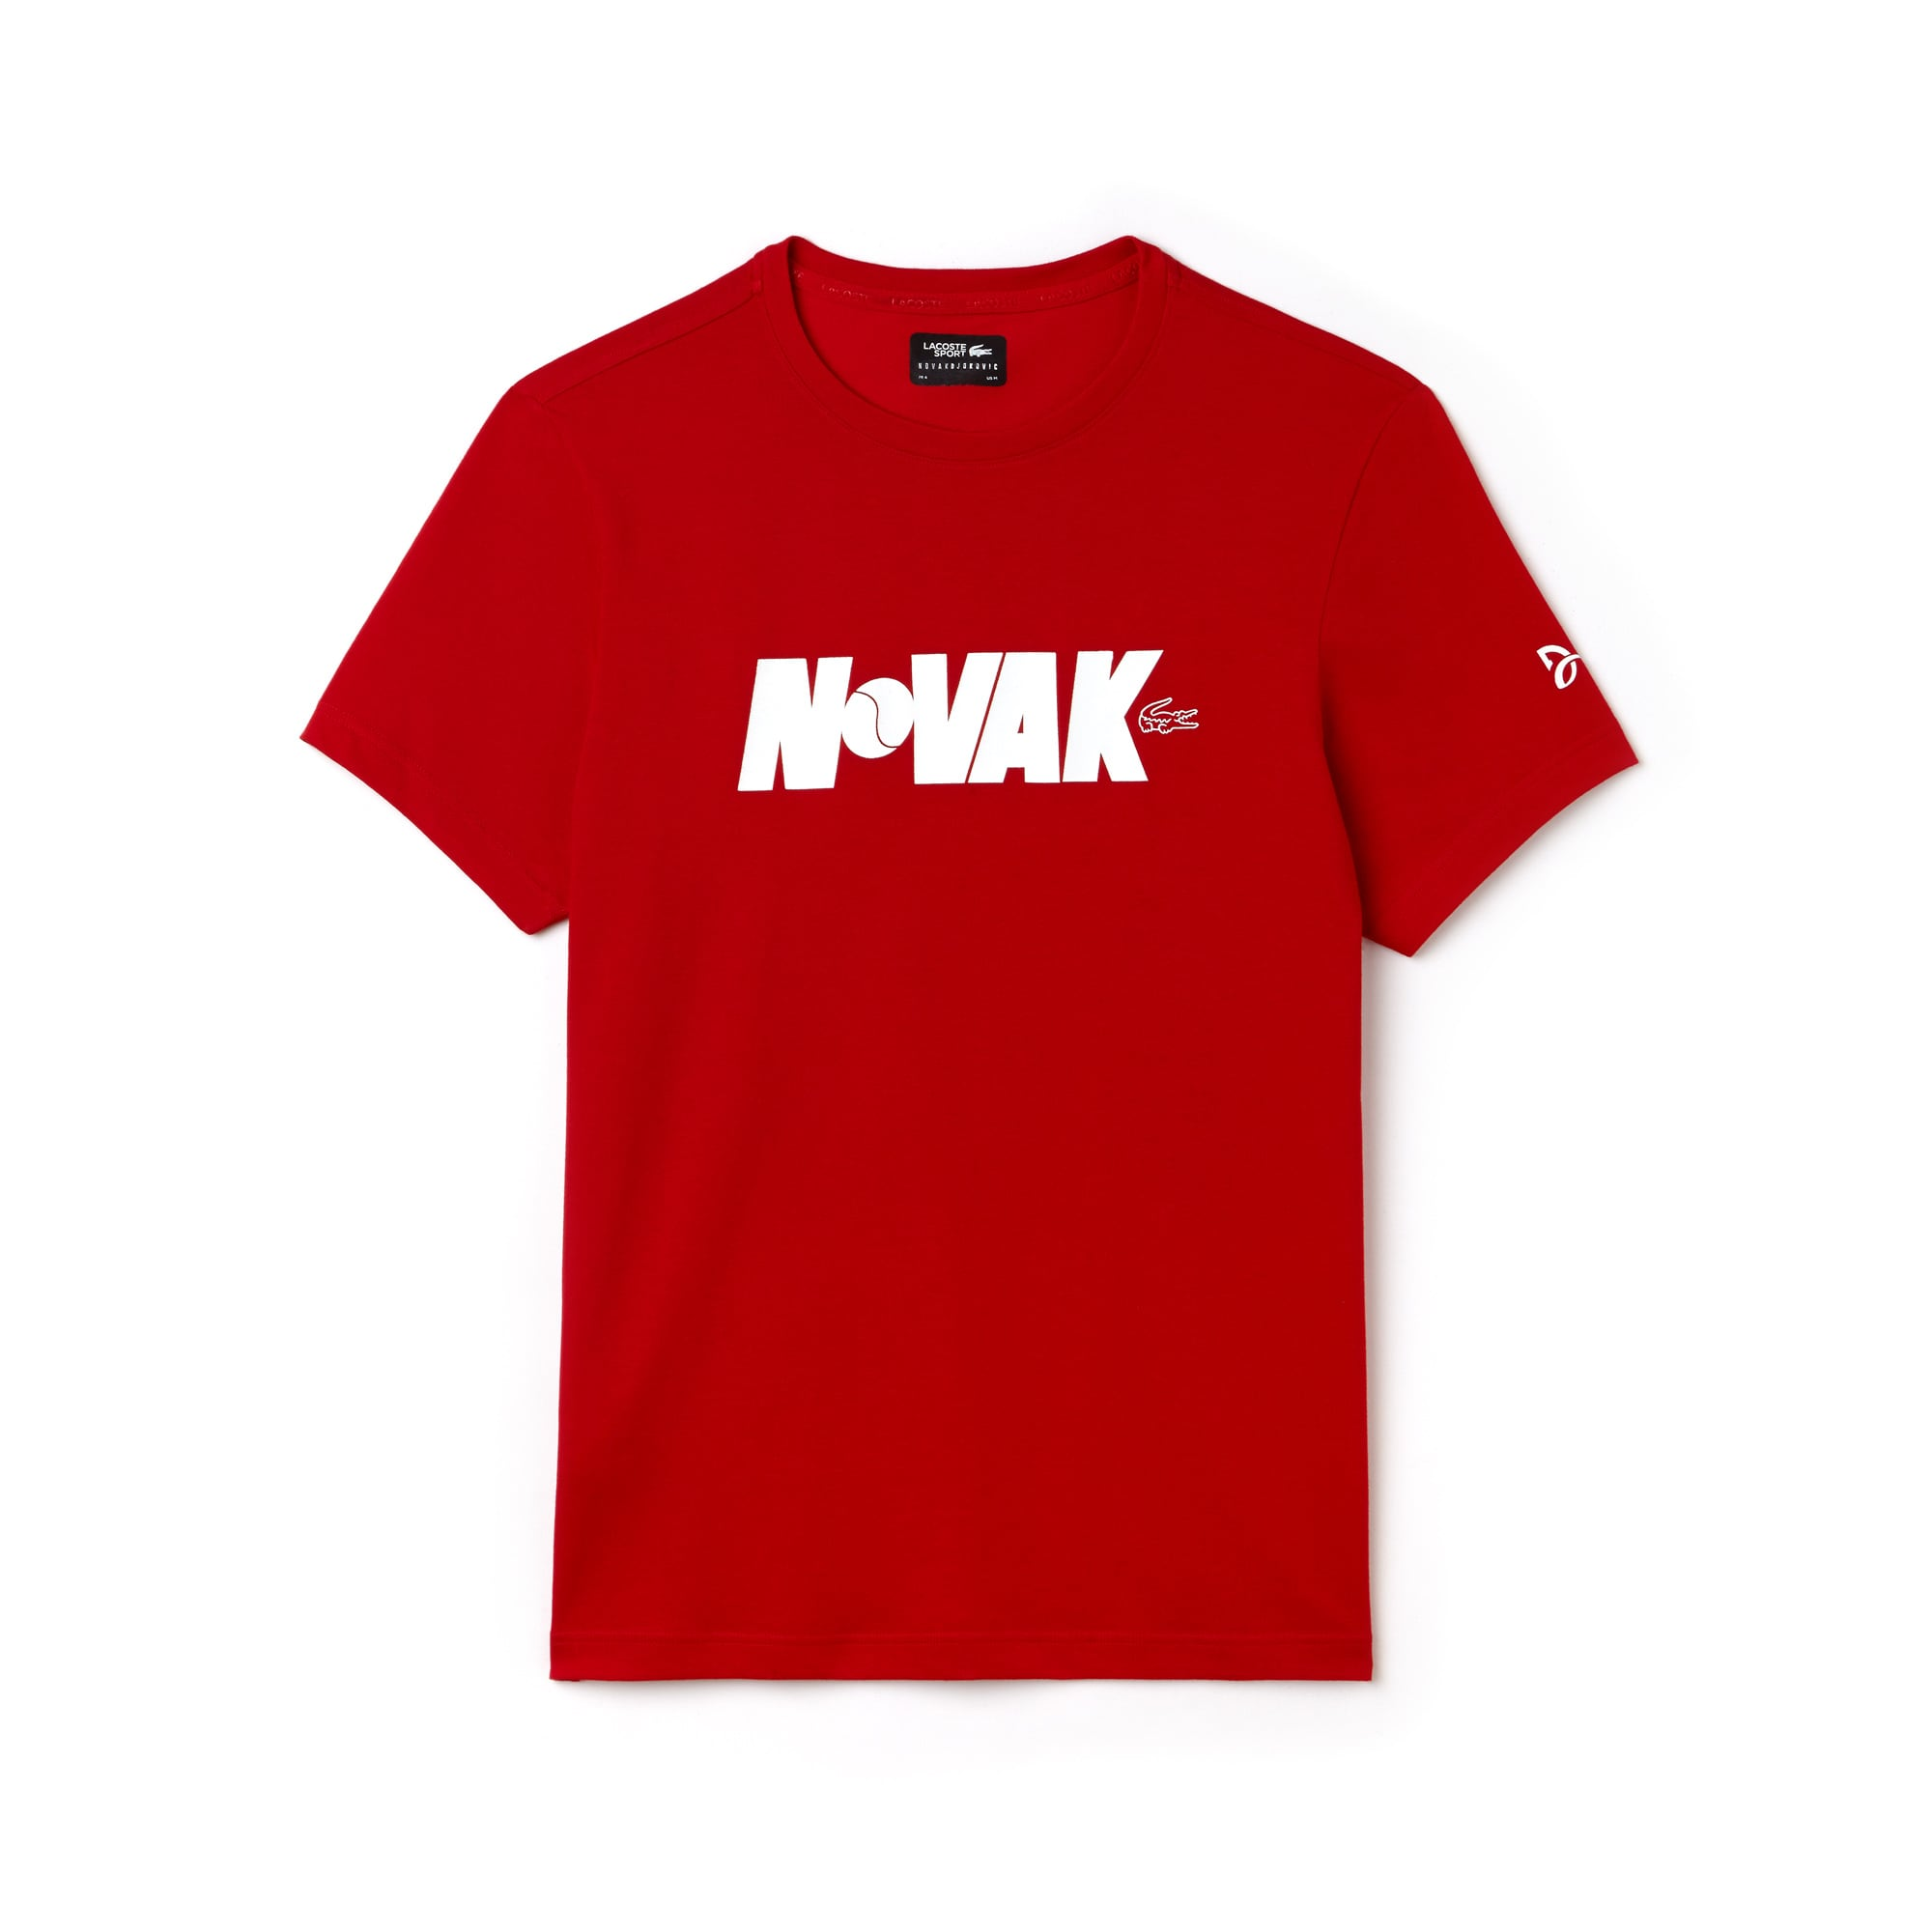 Men's Lacoste SPORT NOVAK DJOKOVIC SUPPORT WITH STYLE COLLECTION Crew Neck Technical Jersey T-shirt